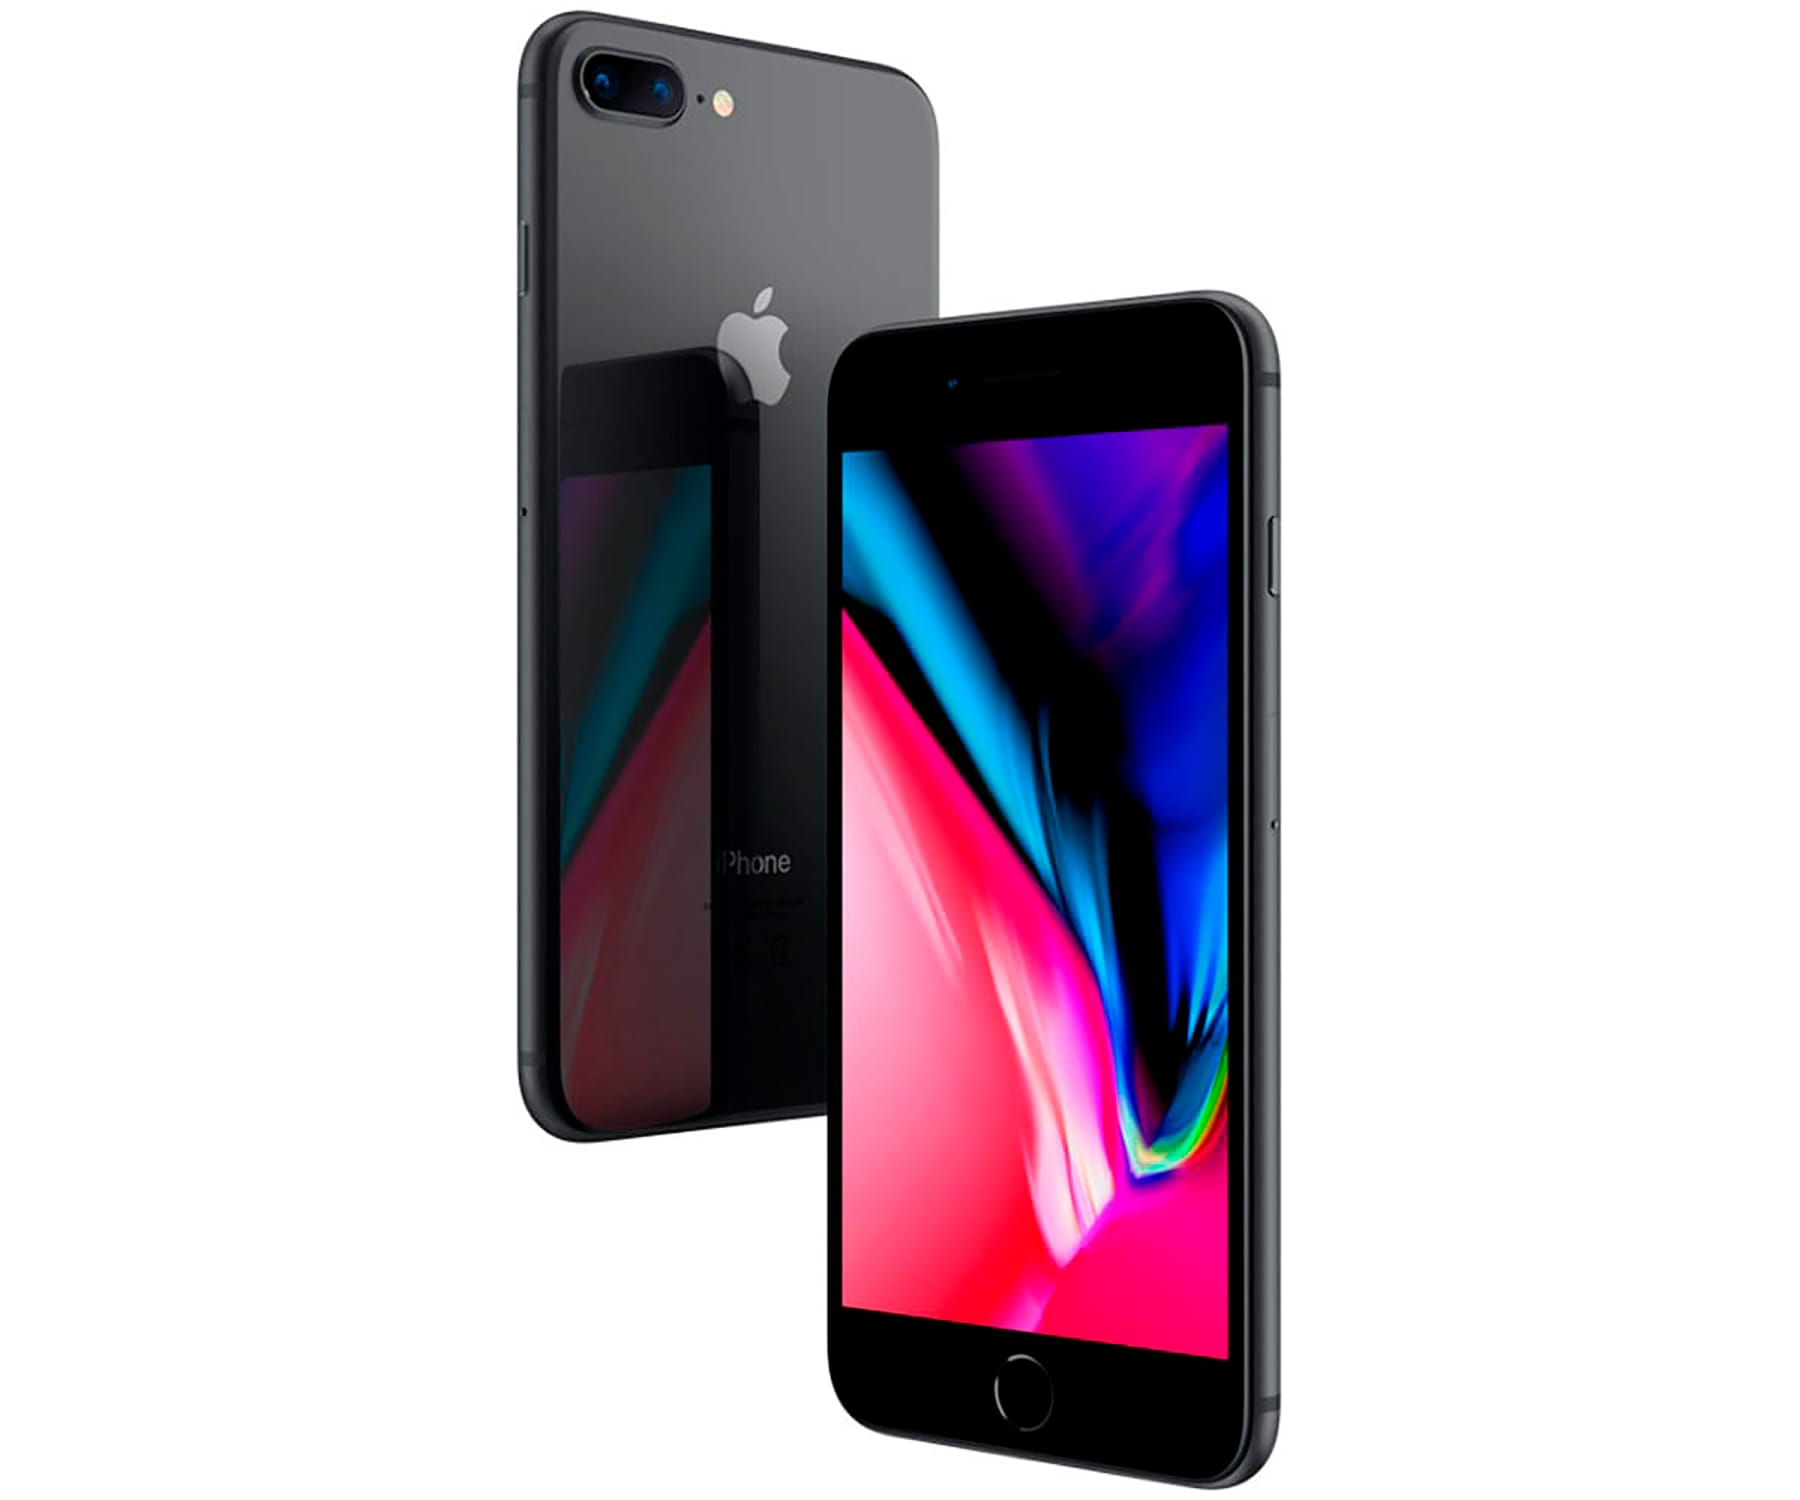 cfde2af8f19 APPLE IPHONE 8 PLUS 64GB GRIS ESPACIAL REACONDICIONADO CPO MÓVIL 4G 5.5''  RETINA FHD ...